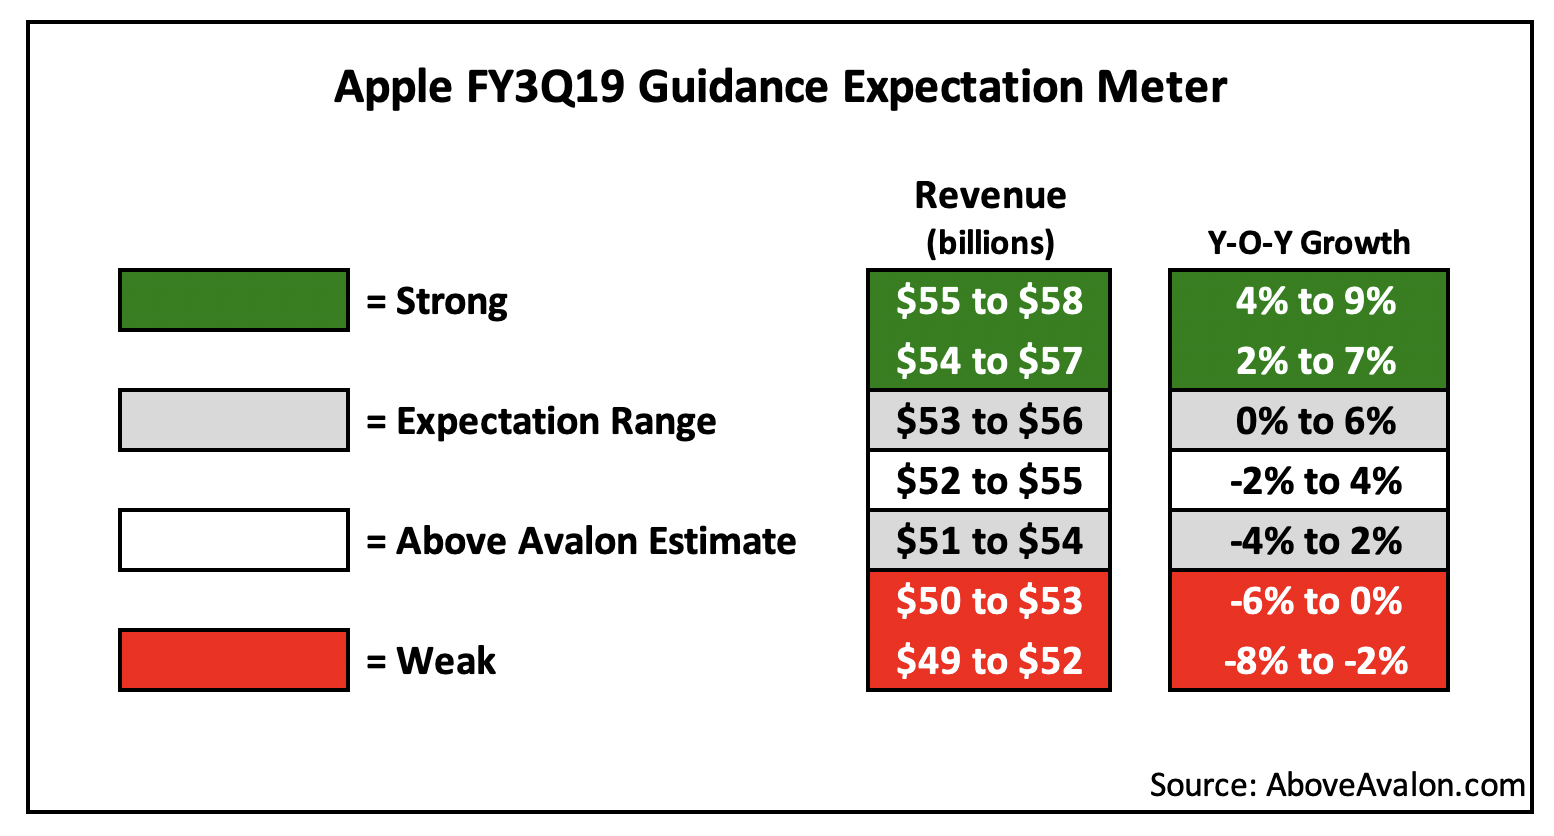 Apple FY3Q19 Guidance Expectation Meter (AboveAvalon.com)